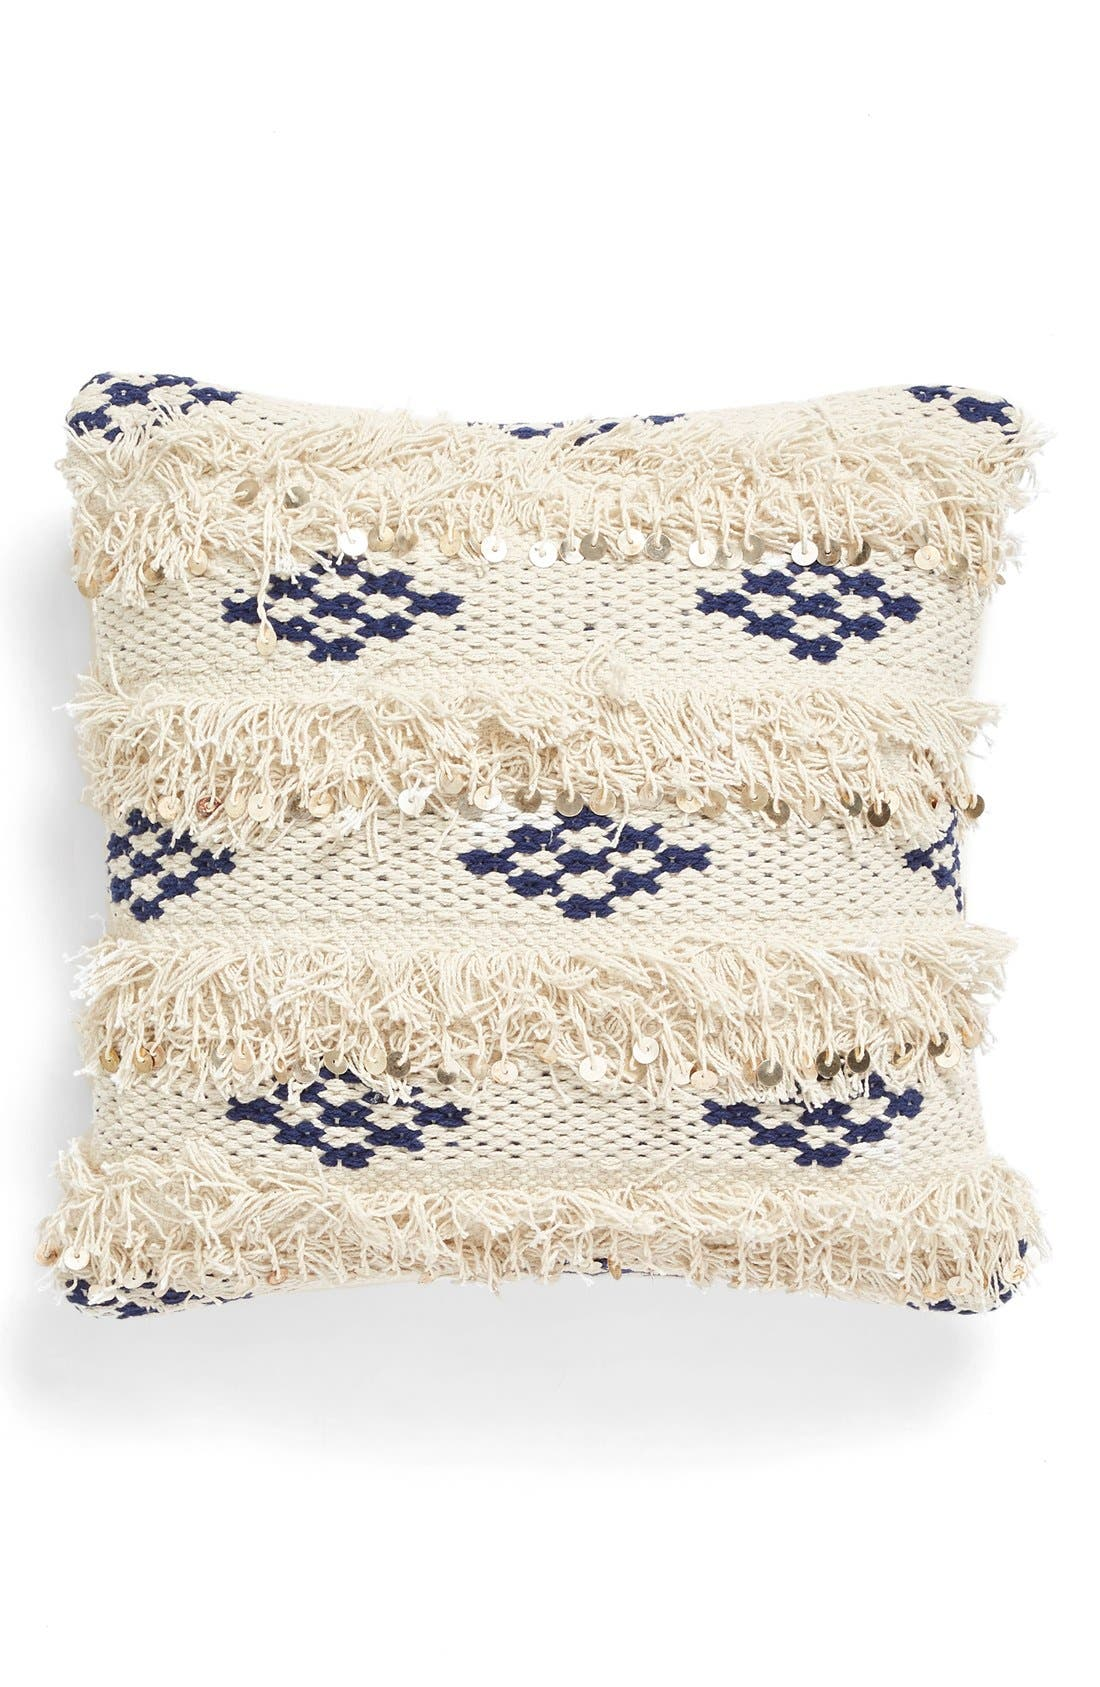 Alternate Image 1 Selected - Nordstrom at Home 'Morocco' Pillow